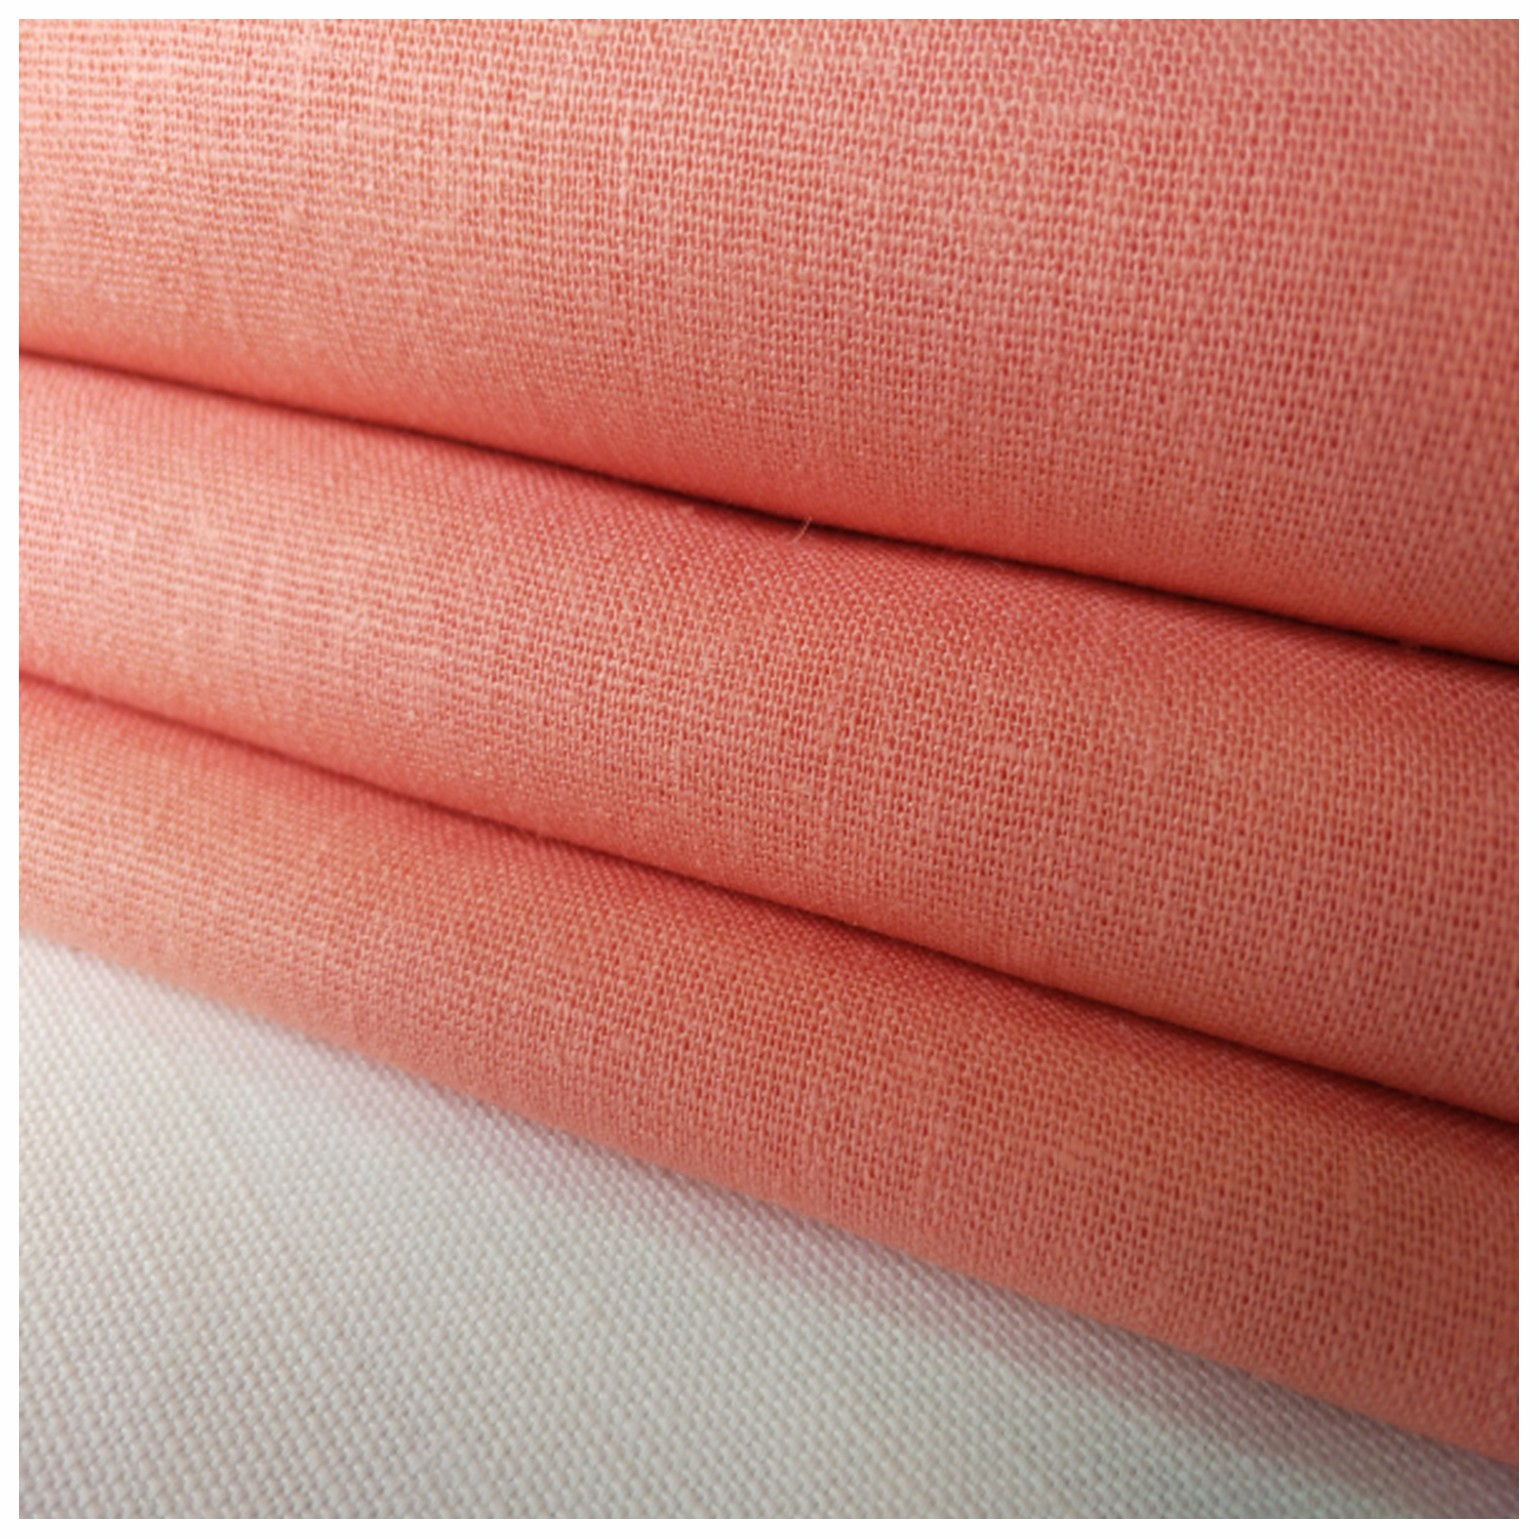 Multicolor High Quality Linen Fabric for Fashionable Dress